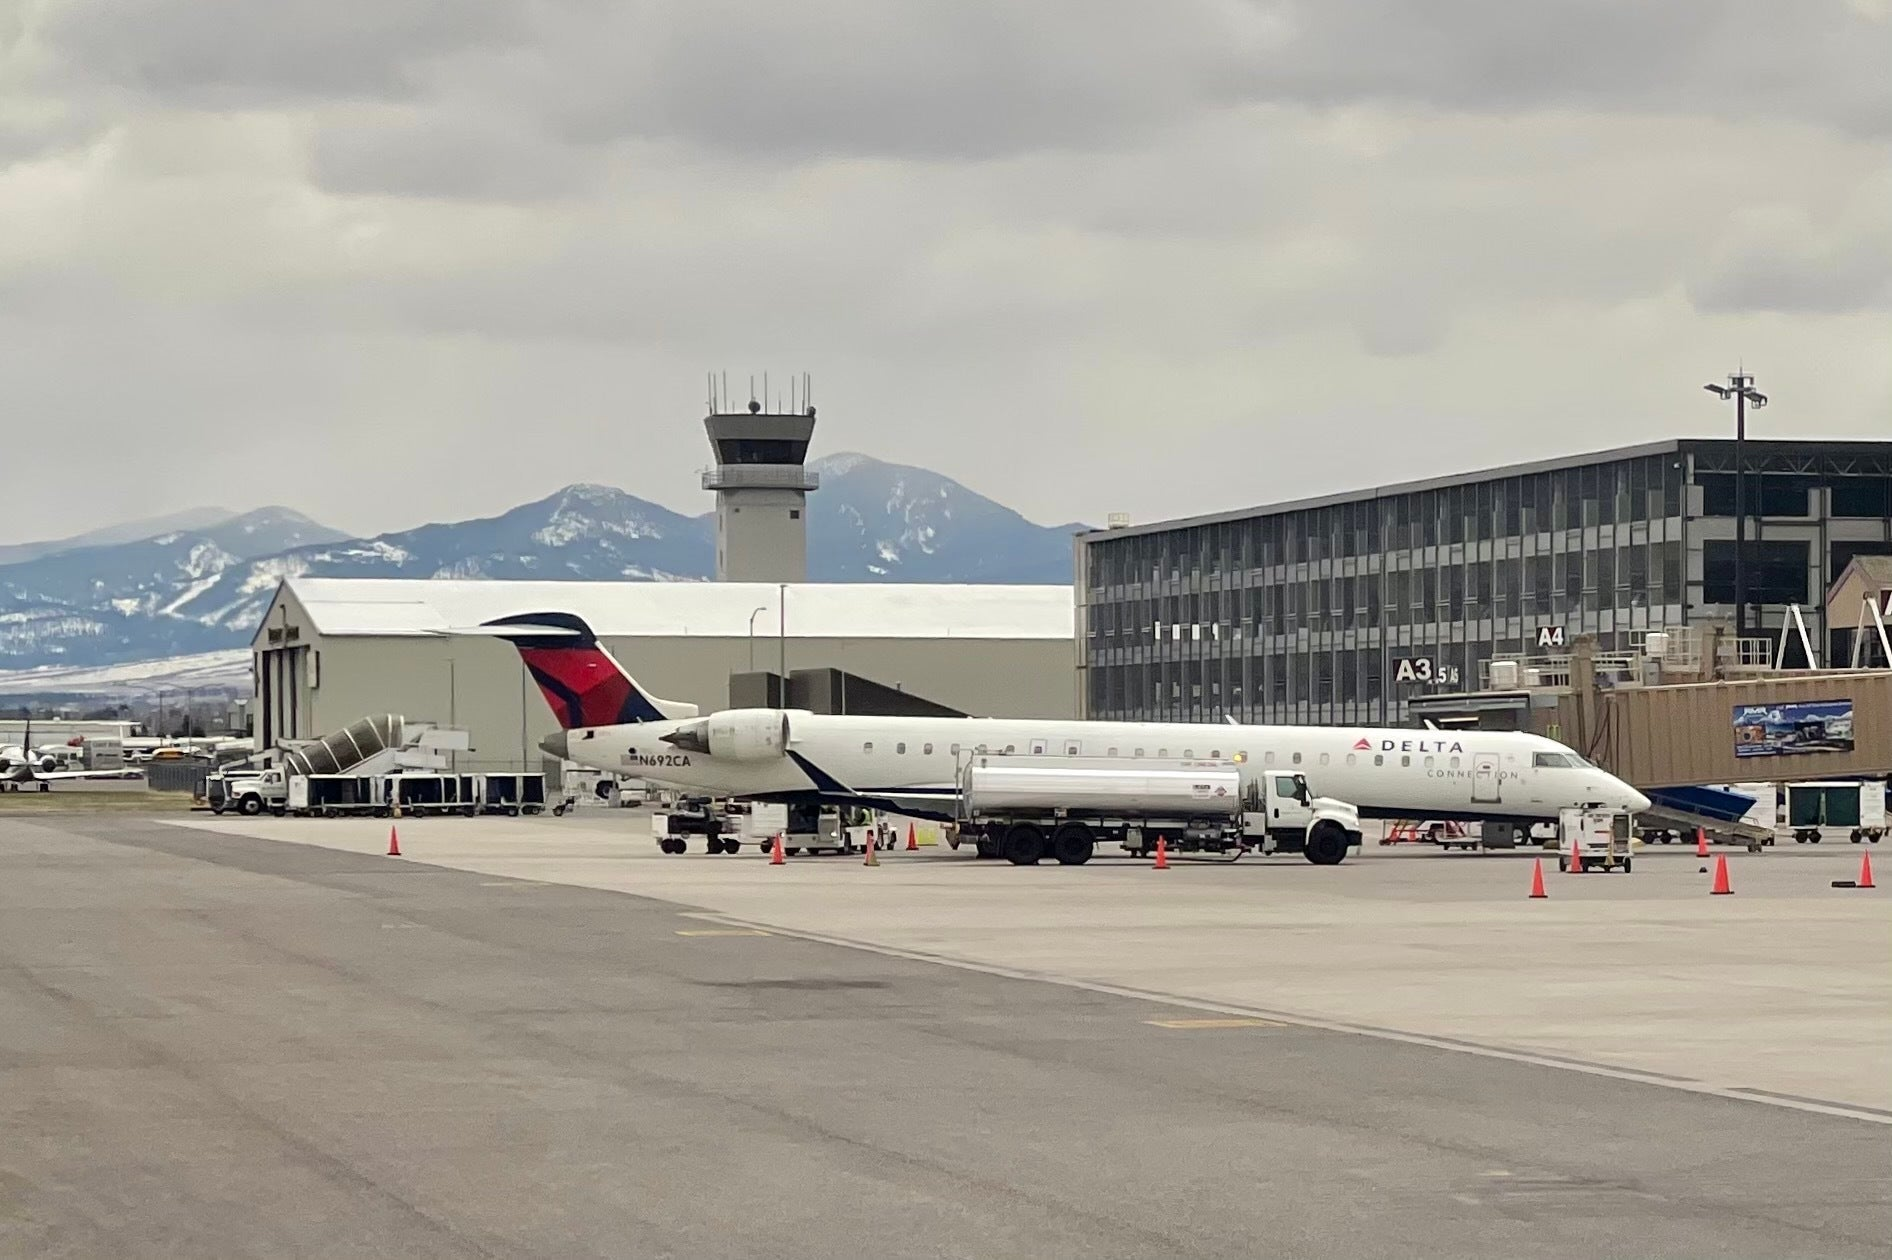 Jet fuel shortages could lead to long delays at western US airports